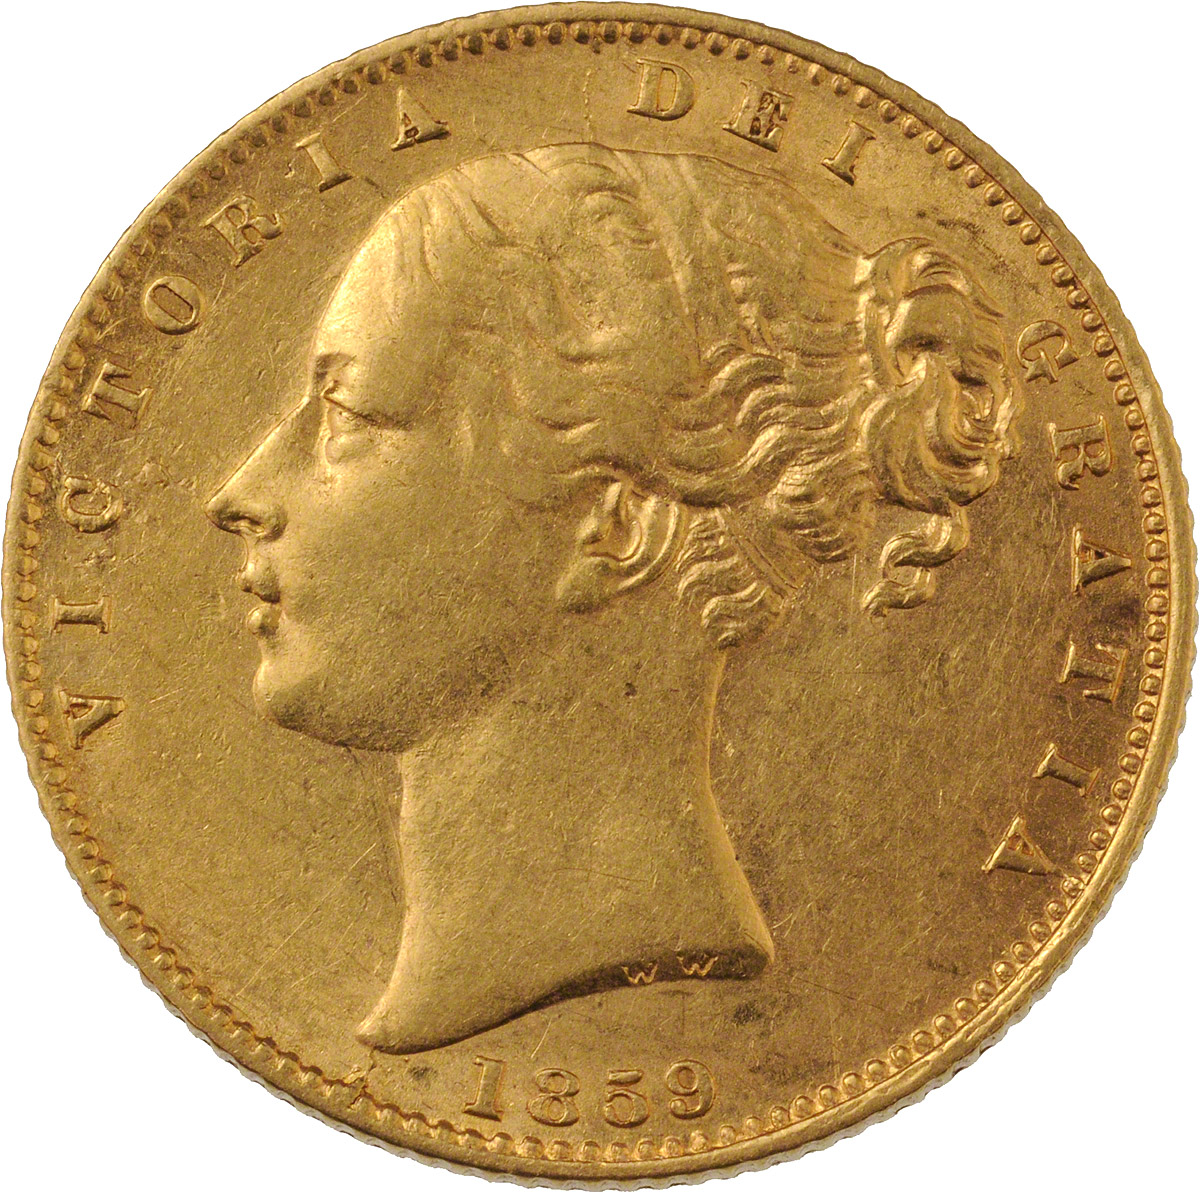 Obverse Face of a 1859-Ansell-Gold-Sovereign